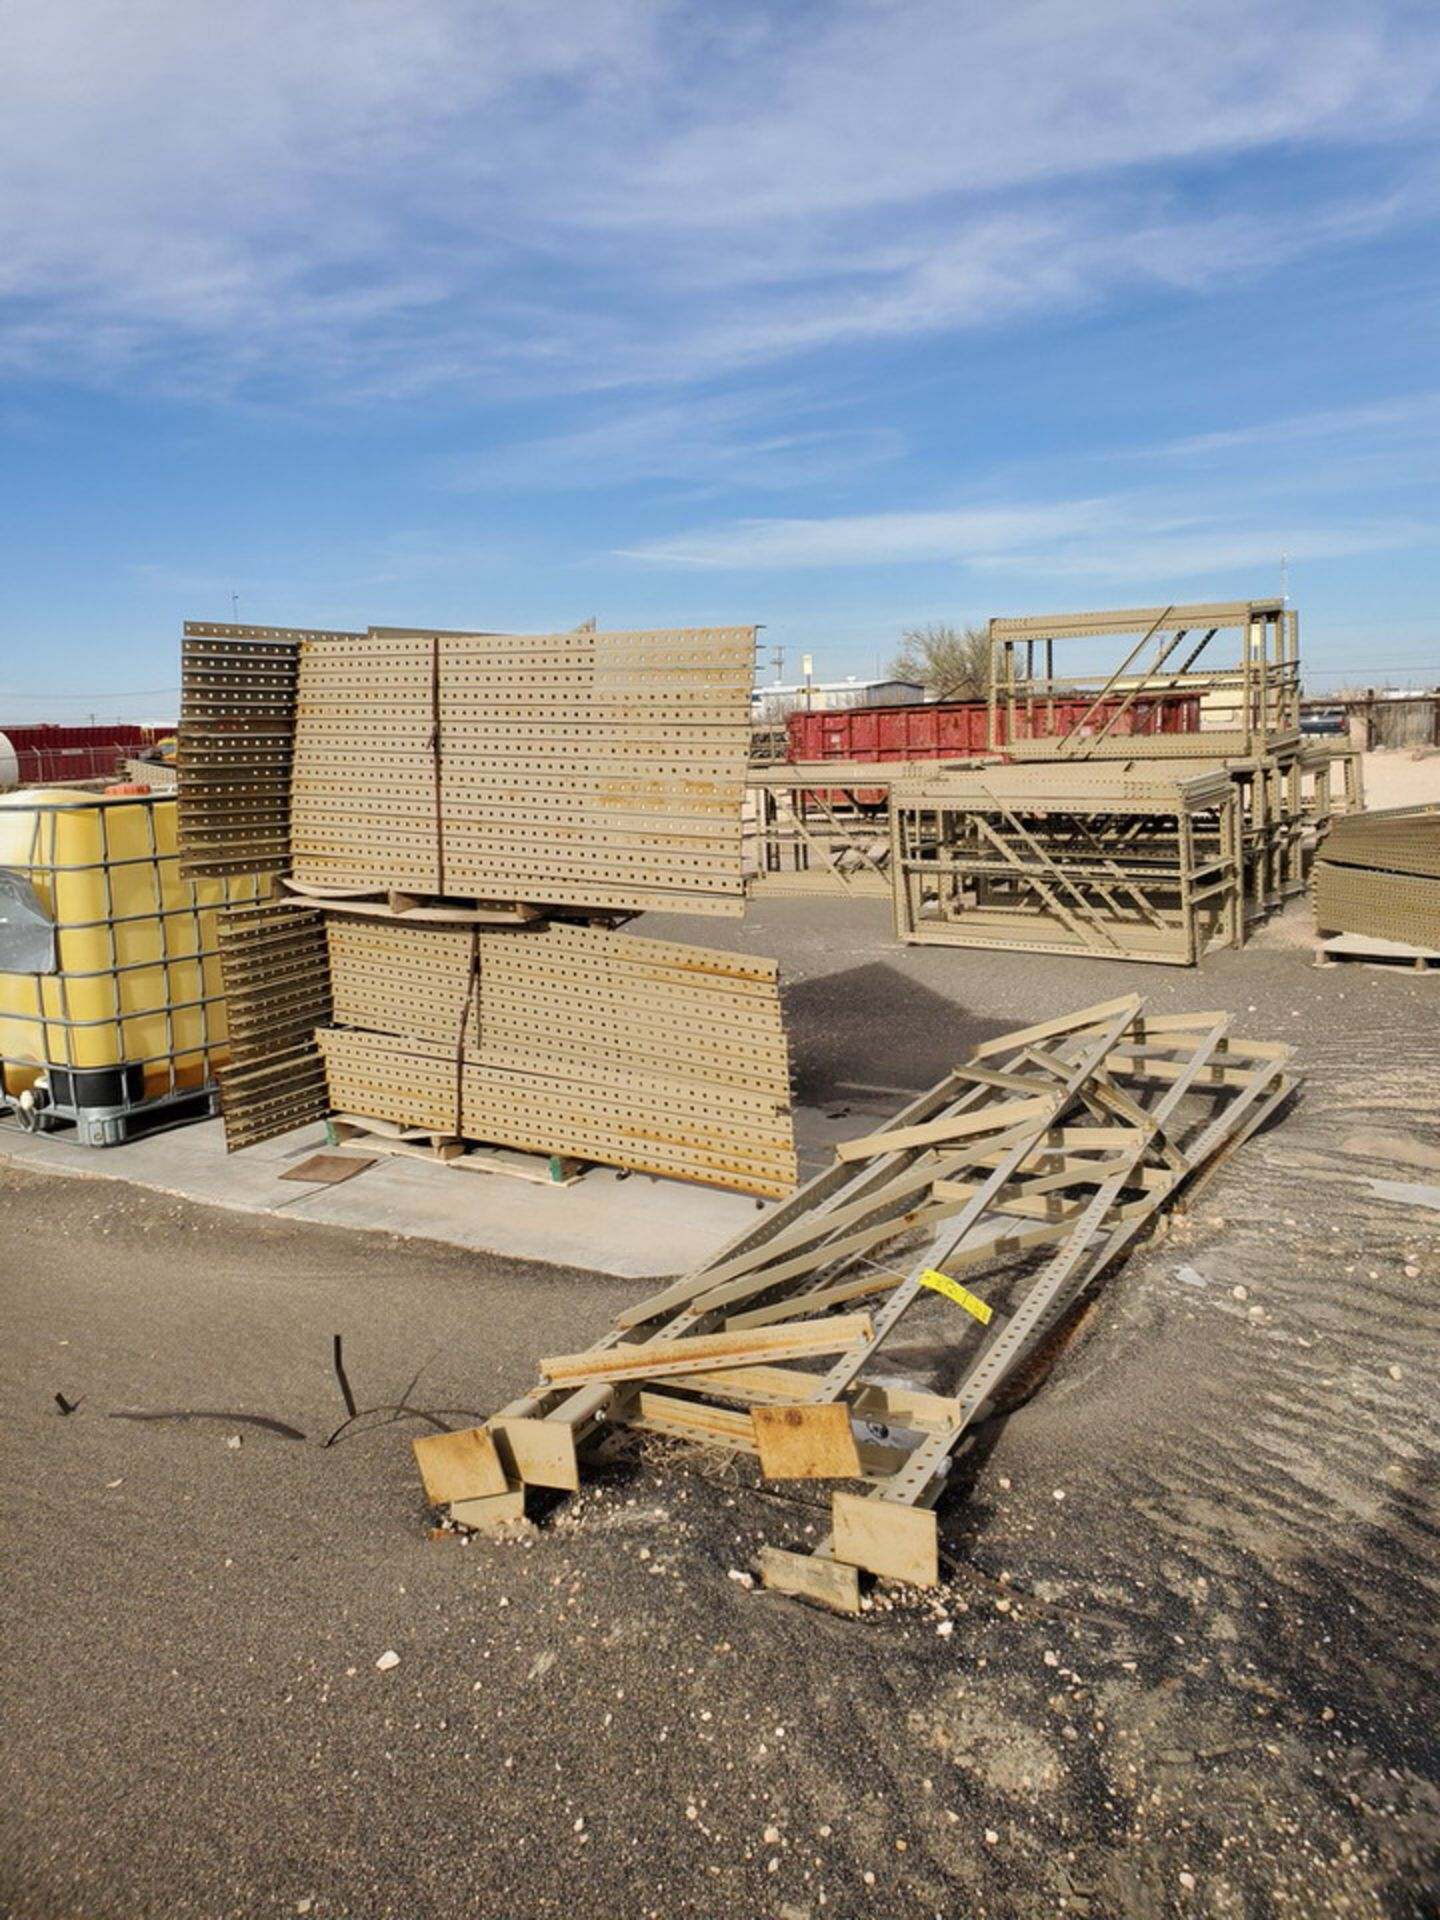 Disassembled Catwalk Sections - Image 8 of 20